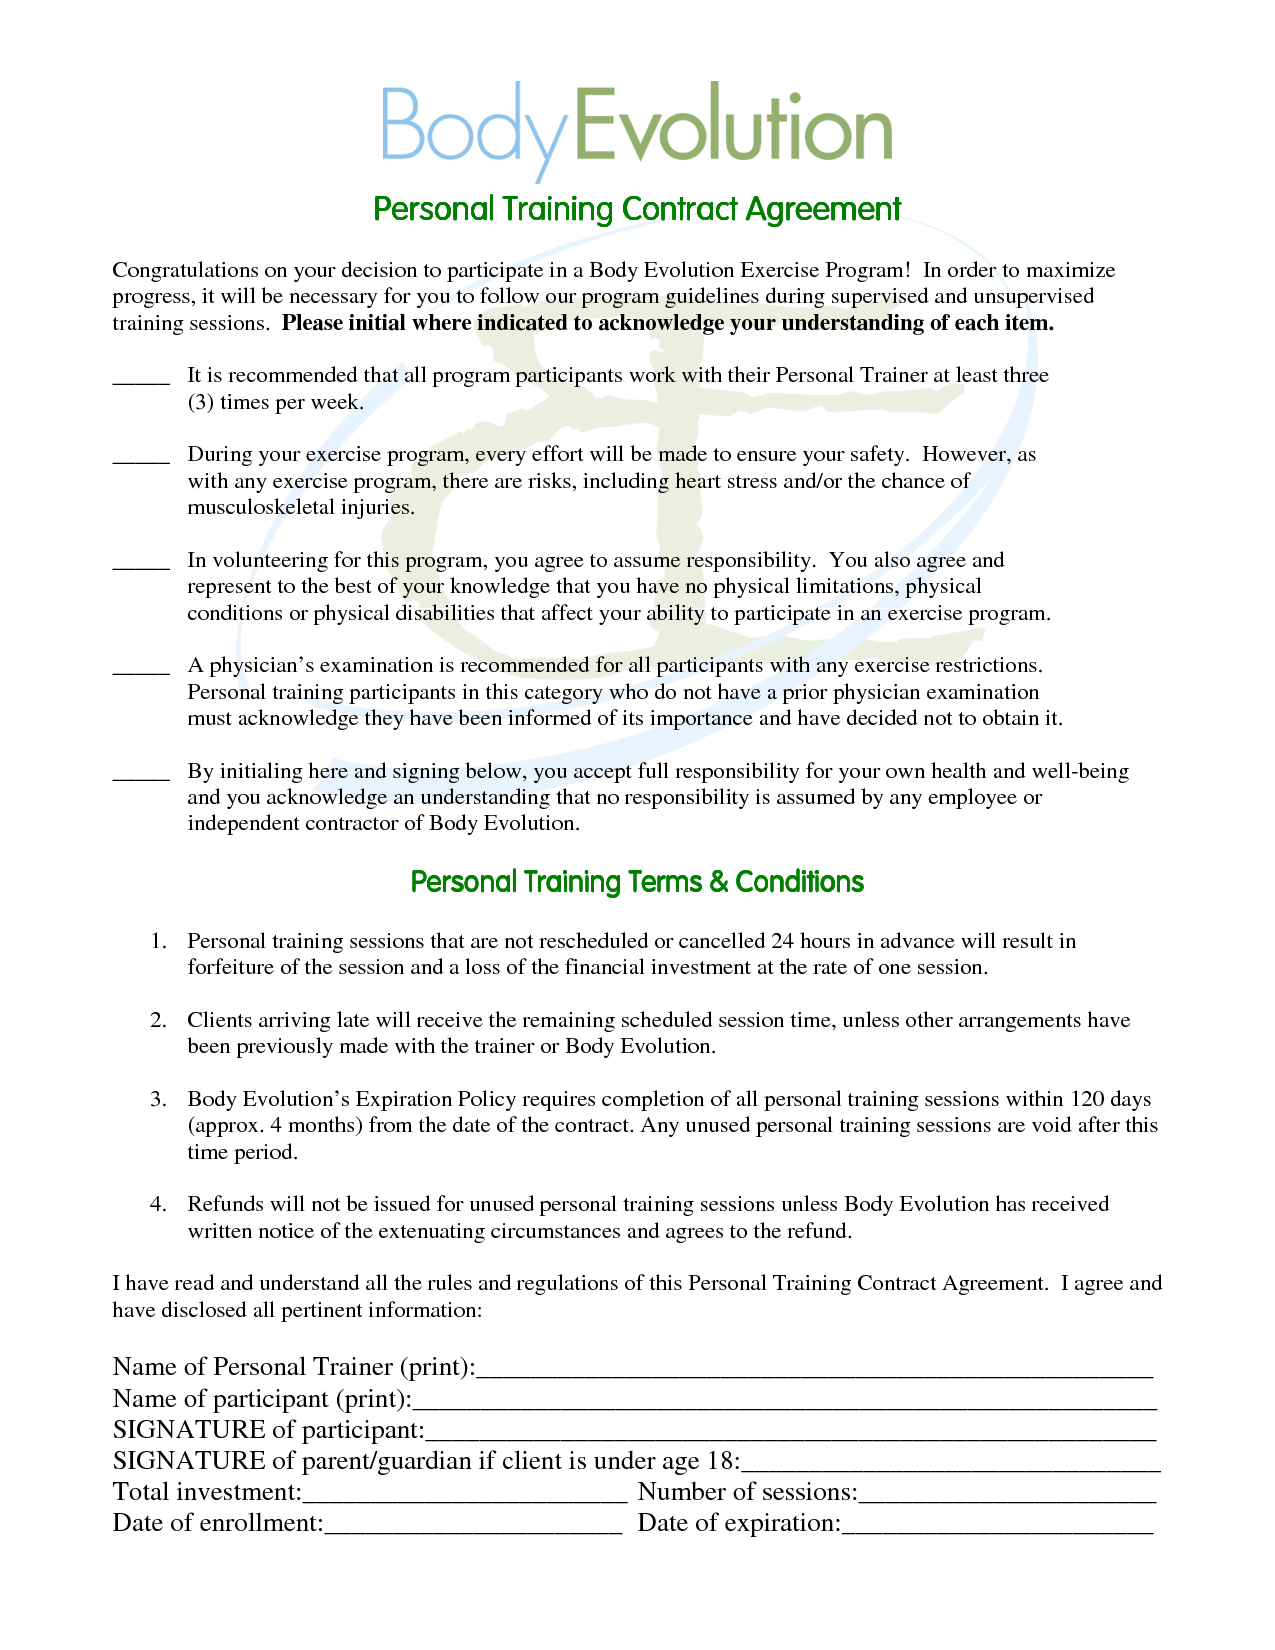 Personal Trainer Contract Agreement Free Printable Documents